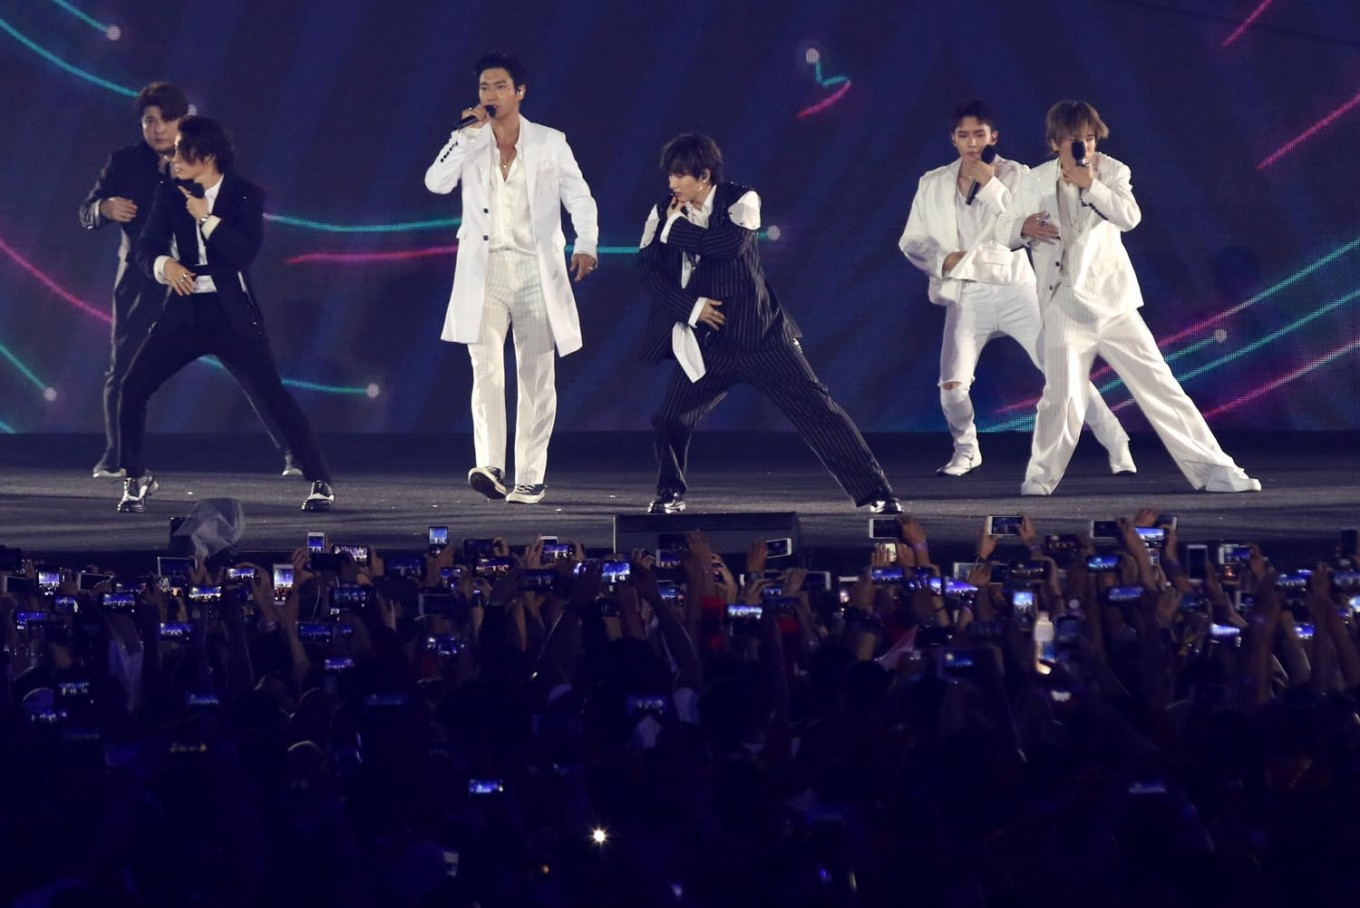 Show 'em how it's done: Jokowi teaches Super Junior new moves